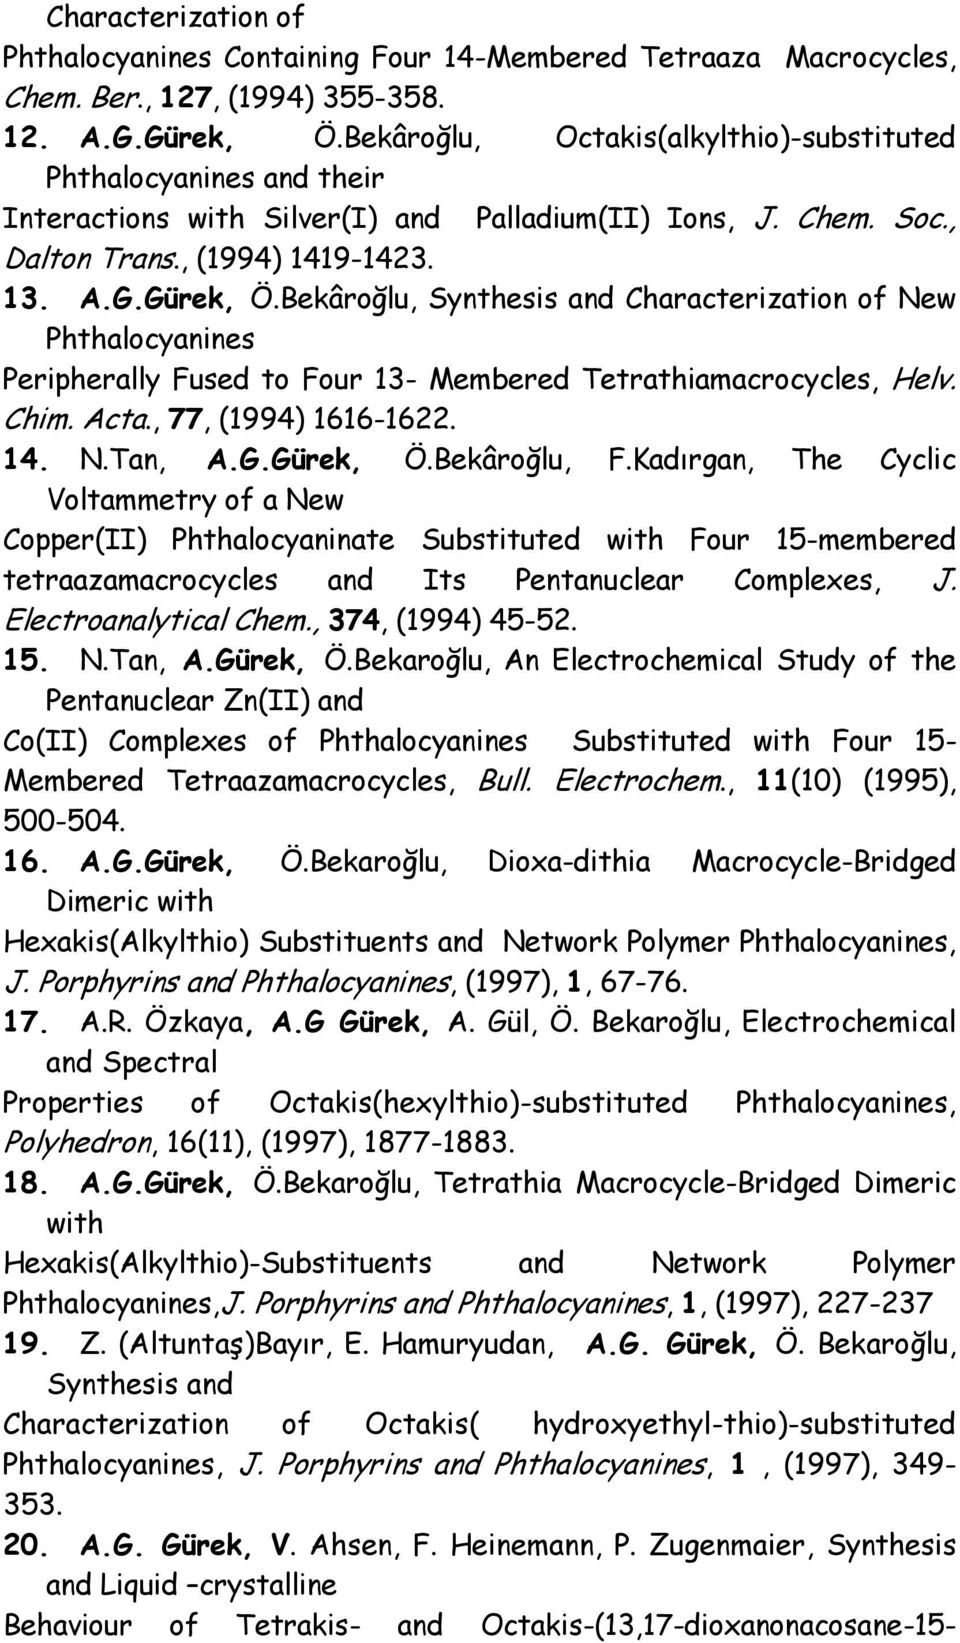 Bekâroğlu, Synthesis and Characterization of New Phthalocyanines Peripherally Fused to Four 13- Membered Tetrathiamacrocycles, Helv. Chim. Acta., 77, (1994) 1616-1622. 14. N.Tan, A.G.Gürek, Ö.